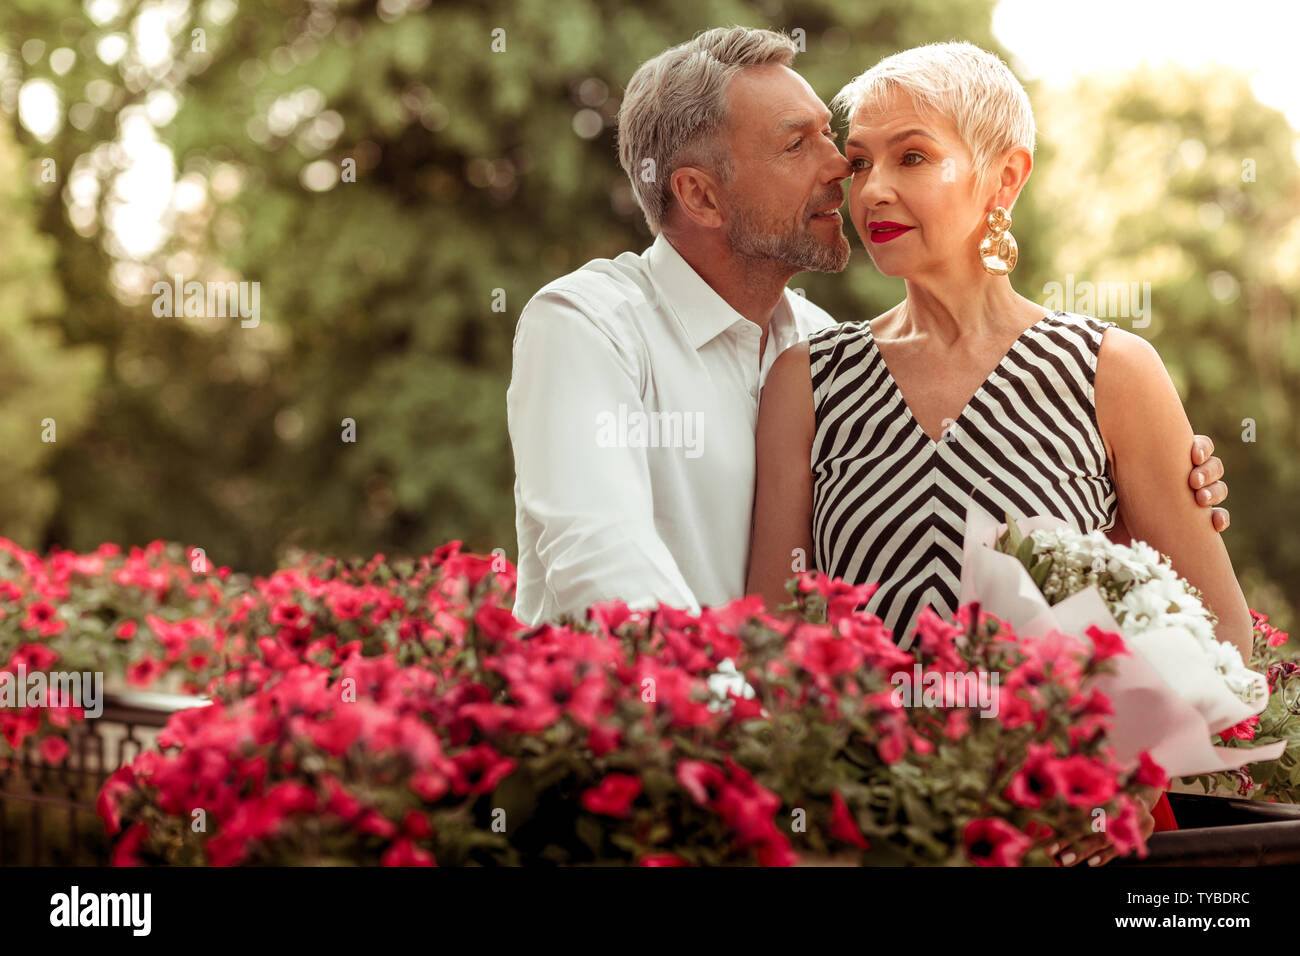 Blonde-haired wife with short hair cut feeling good with her husband Stock Photo